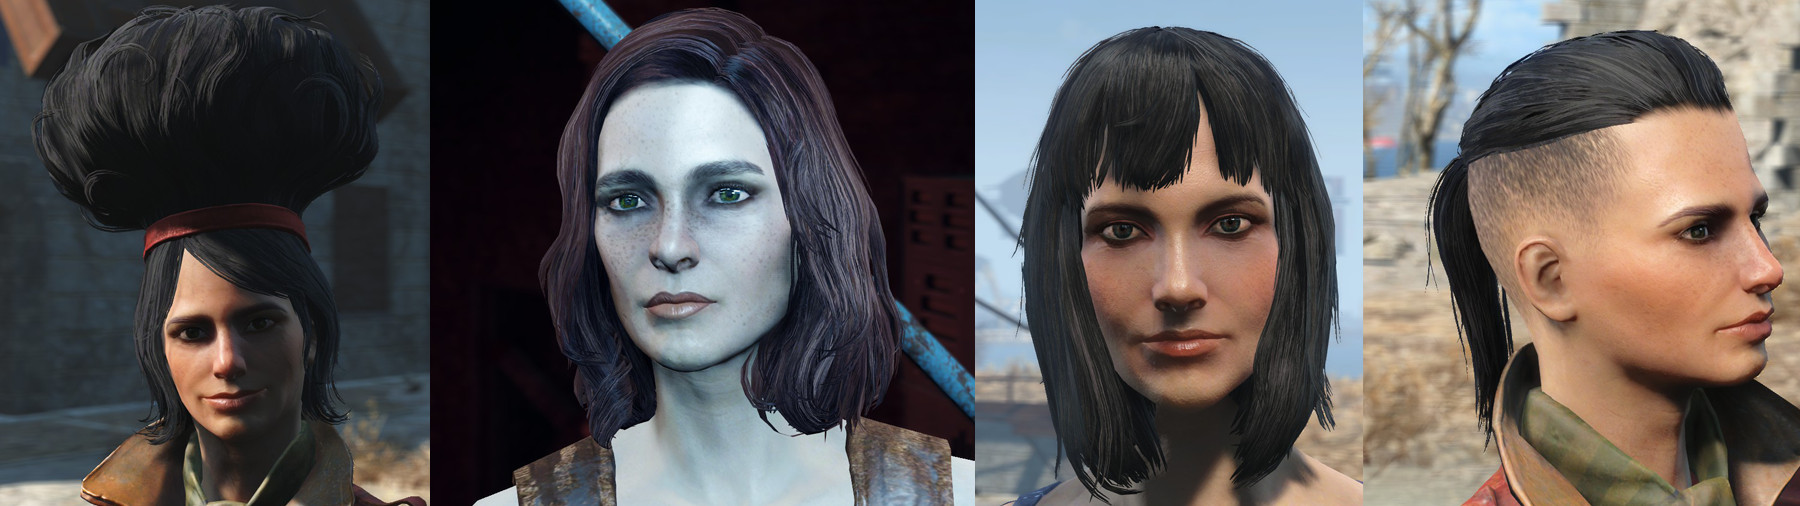 Fallout 4 Female Hairstyles List  list of fallout 4 hairstyles panion hairstyle selection